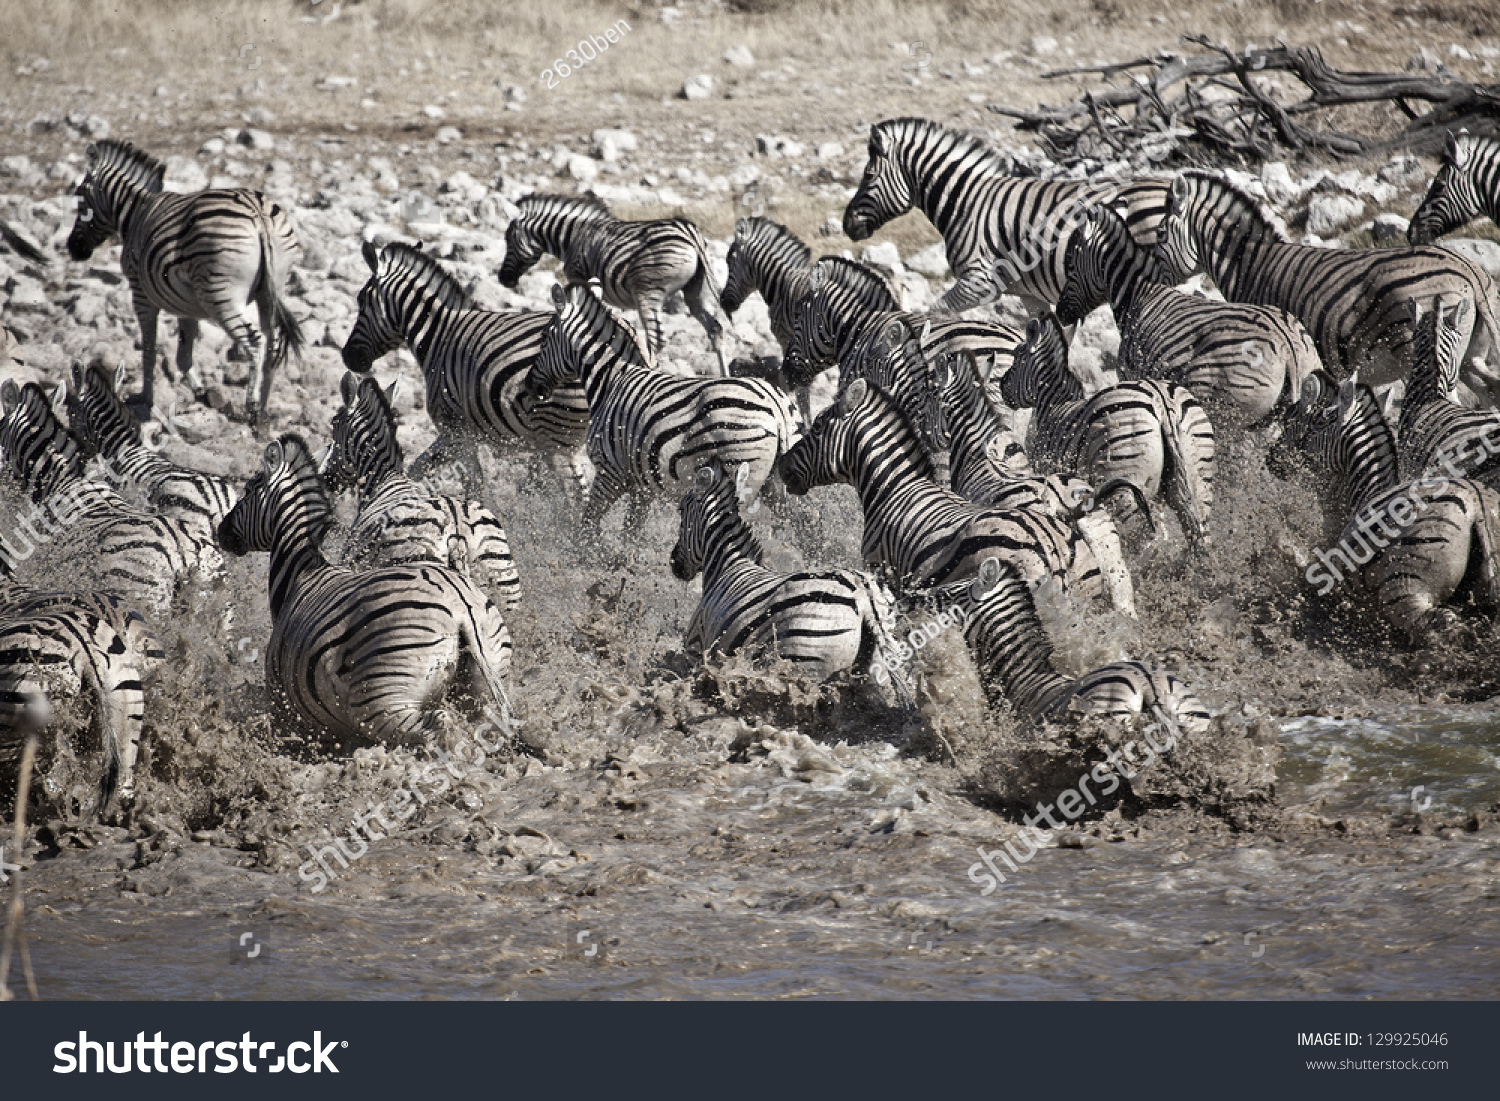 zebras running from predator - photo #8